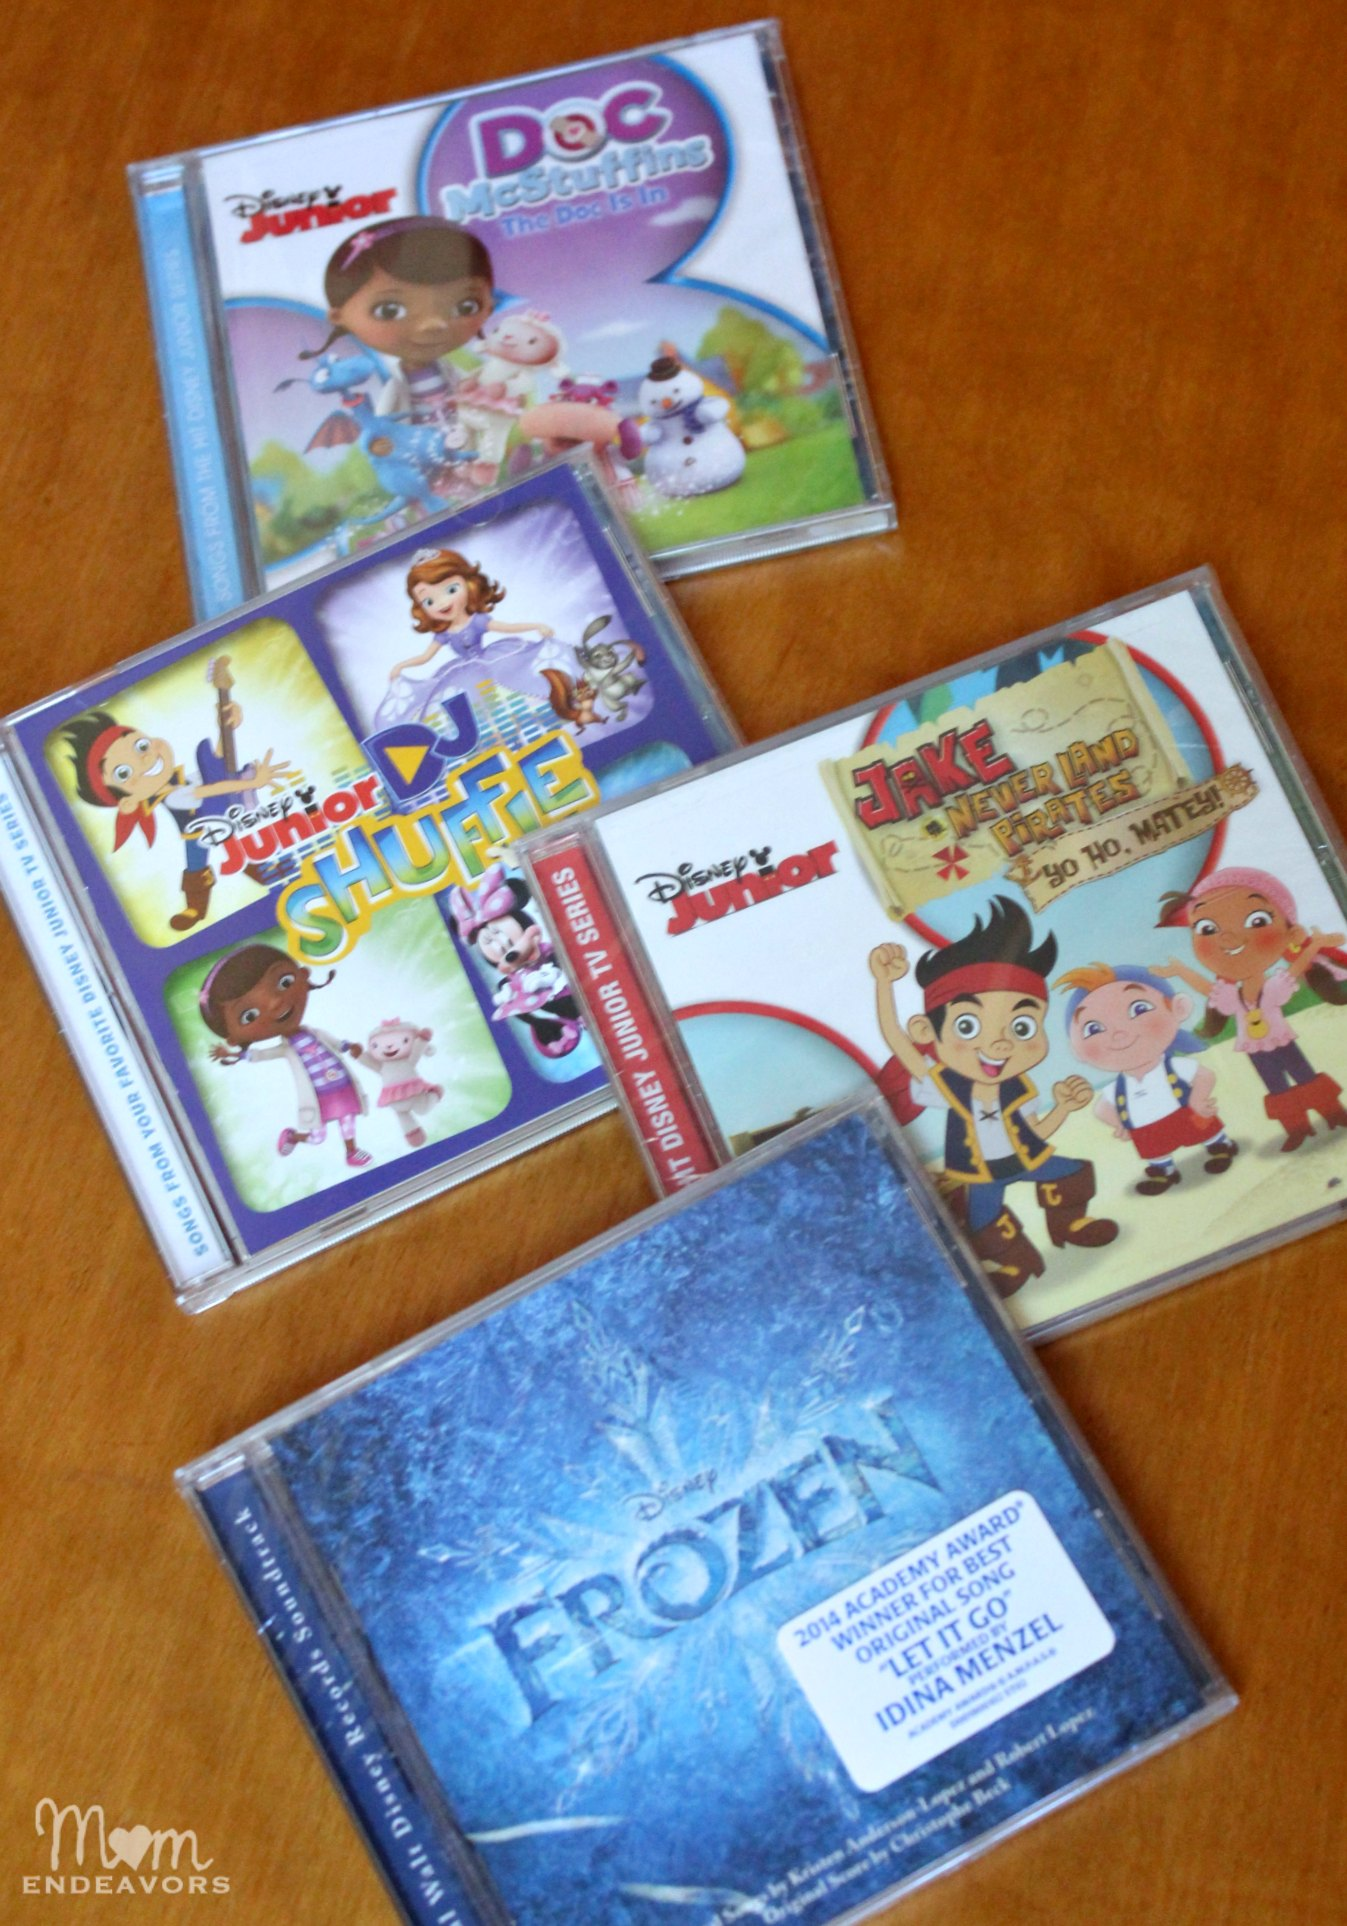 Disney Music CD's